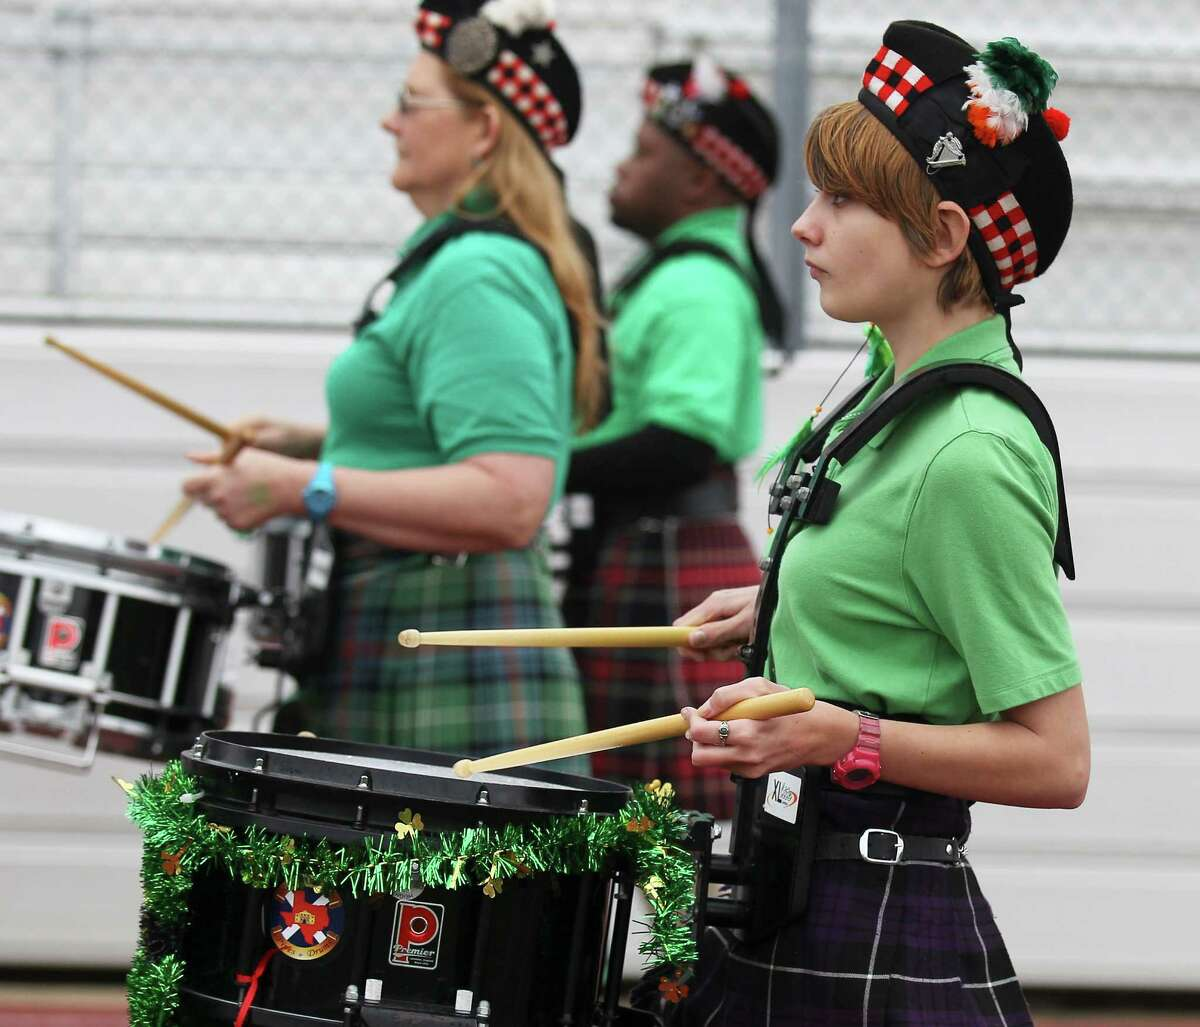 Drummer Caitlin Spence of San Antonio Pipes & Drums marches in the St. Patrick's Day Parade at the University of the Incarnate Word on Saturday, Mar. 8, 2014.